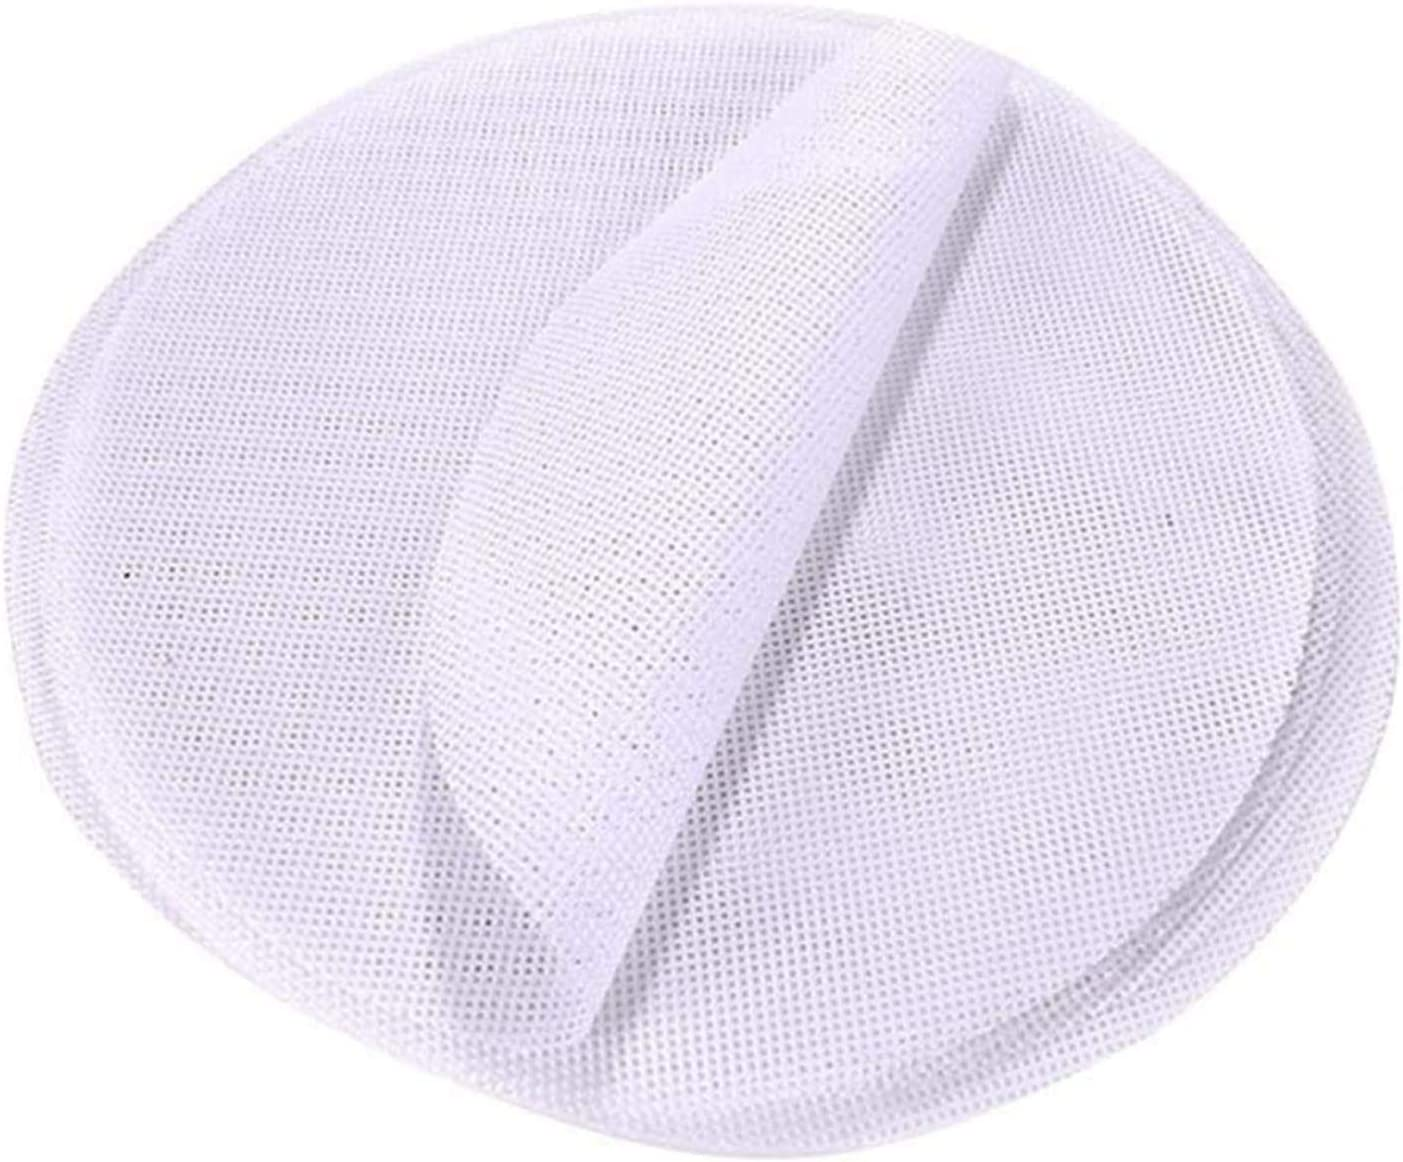 Wjmss 10 Pcs Round Outlet ☆ Free Shipping Steamer Pad Mat Mesh Silicone Liners Popular product